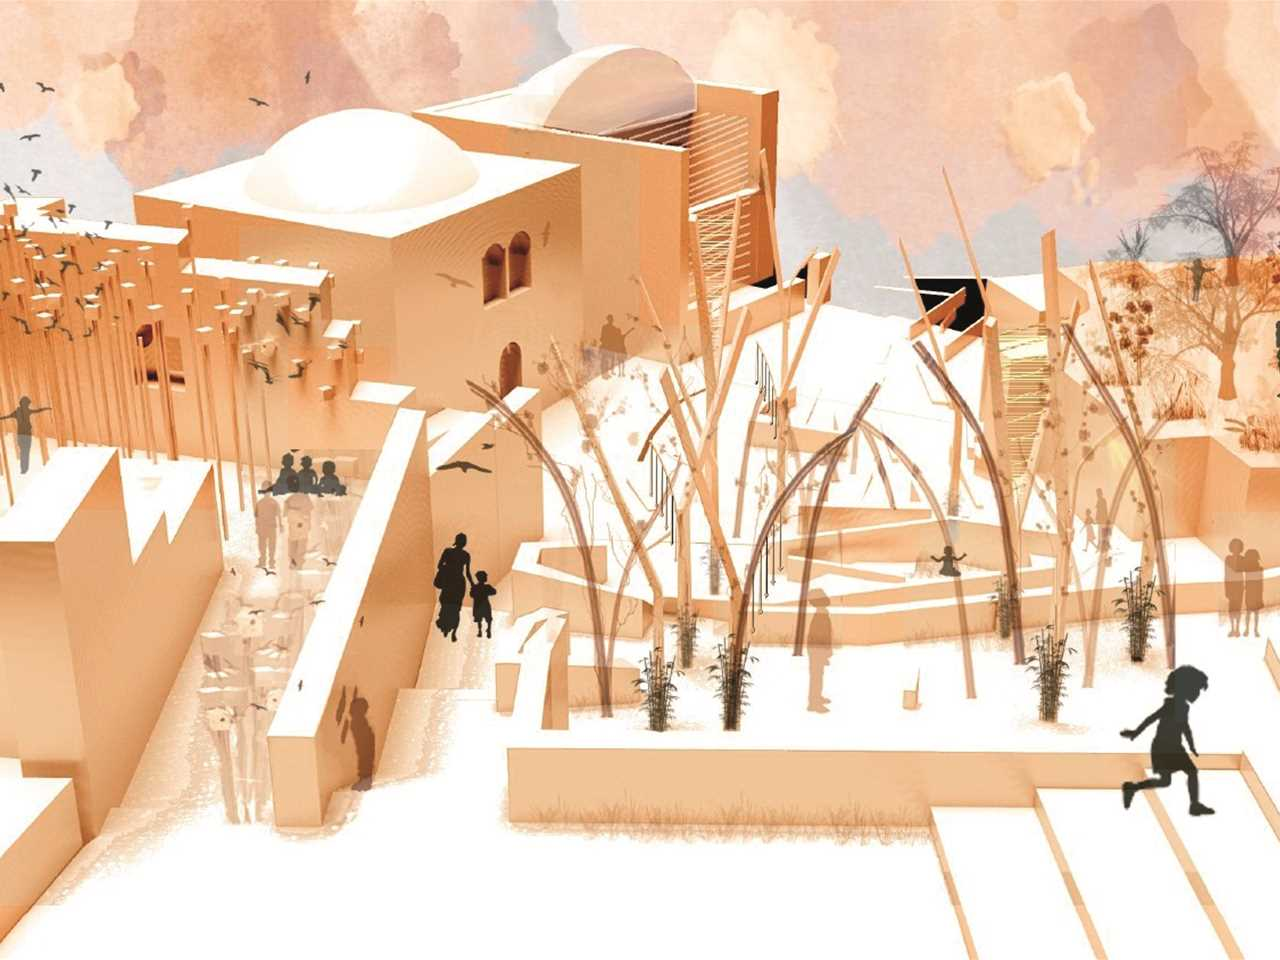 Holcim Awards Acknowledgement prize – Adaptive Re-Use: Women's center and playground, Beit Iksa, …